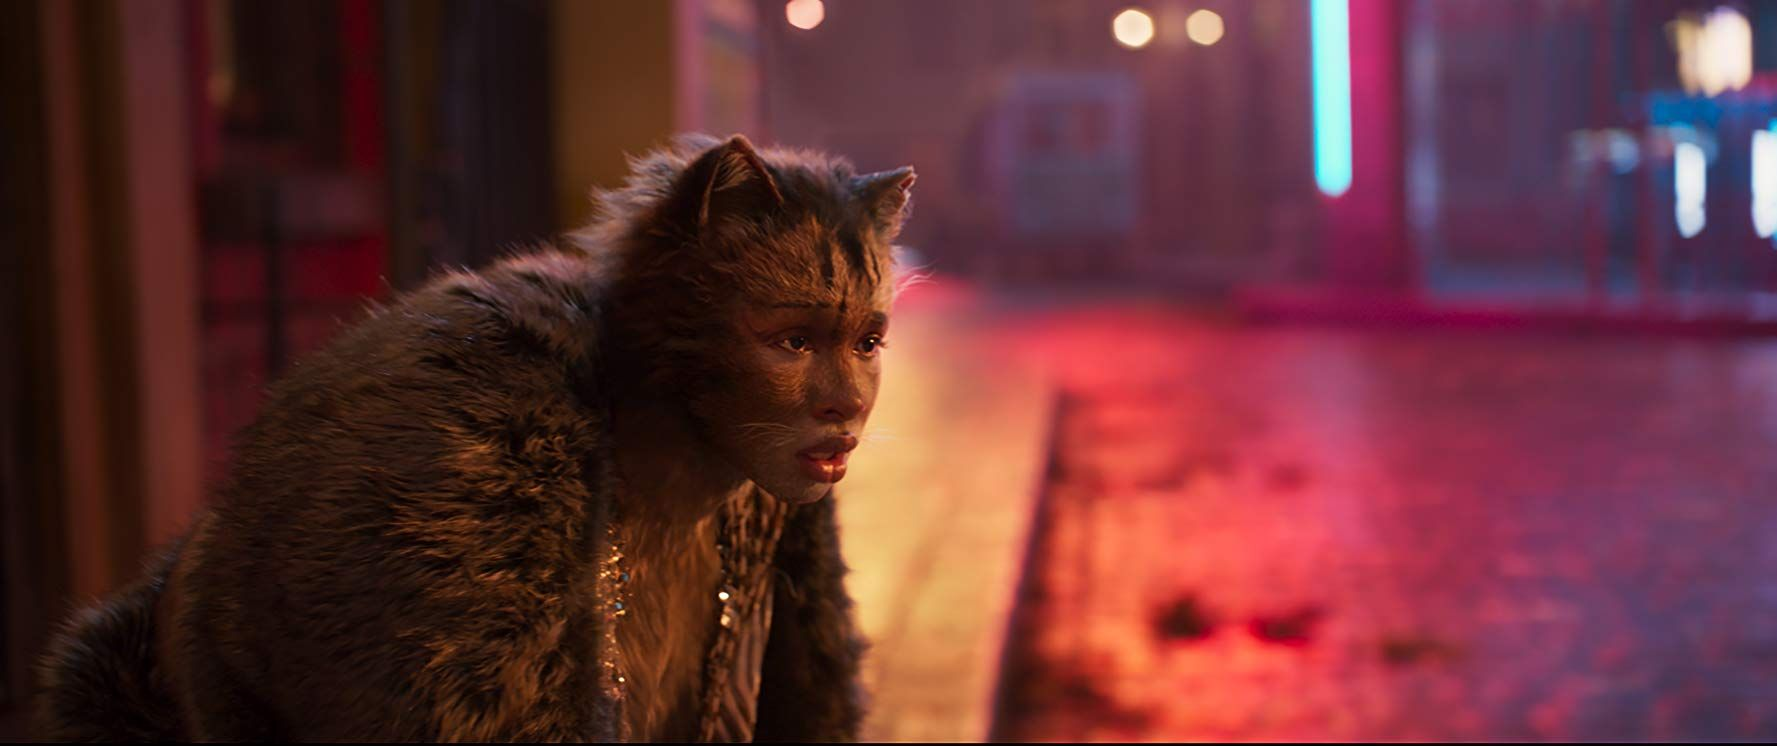 The \u0027Cats\u0027 Movie Trailer Is Haunting the Internet, Twitter Users